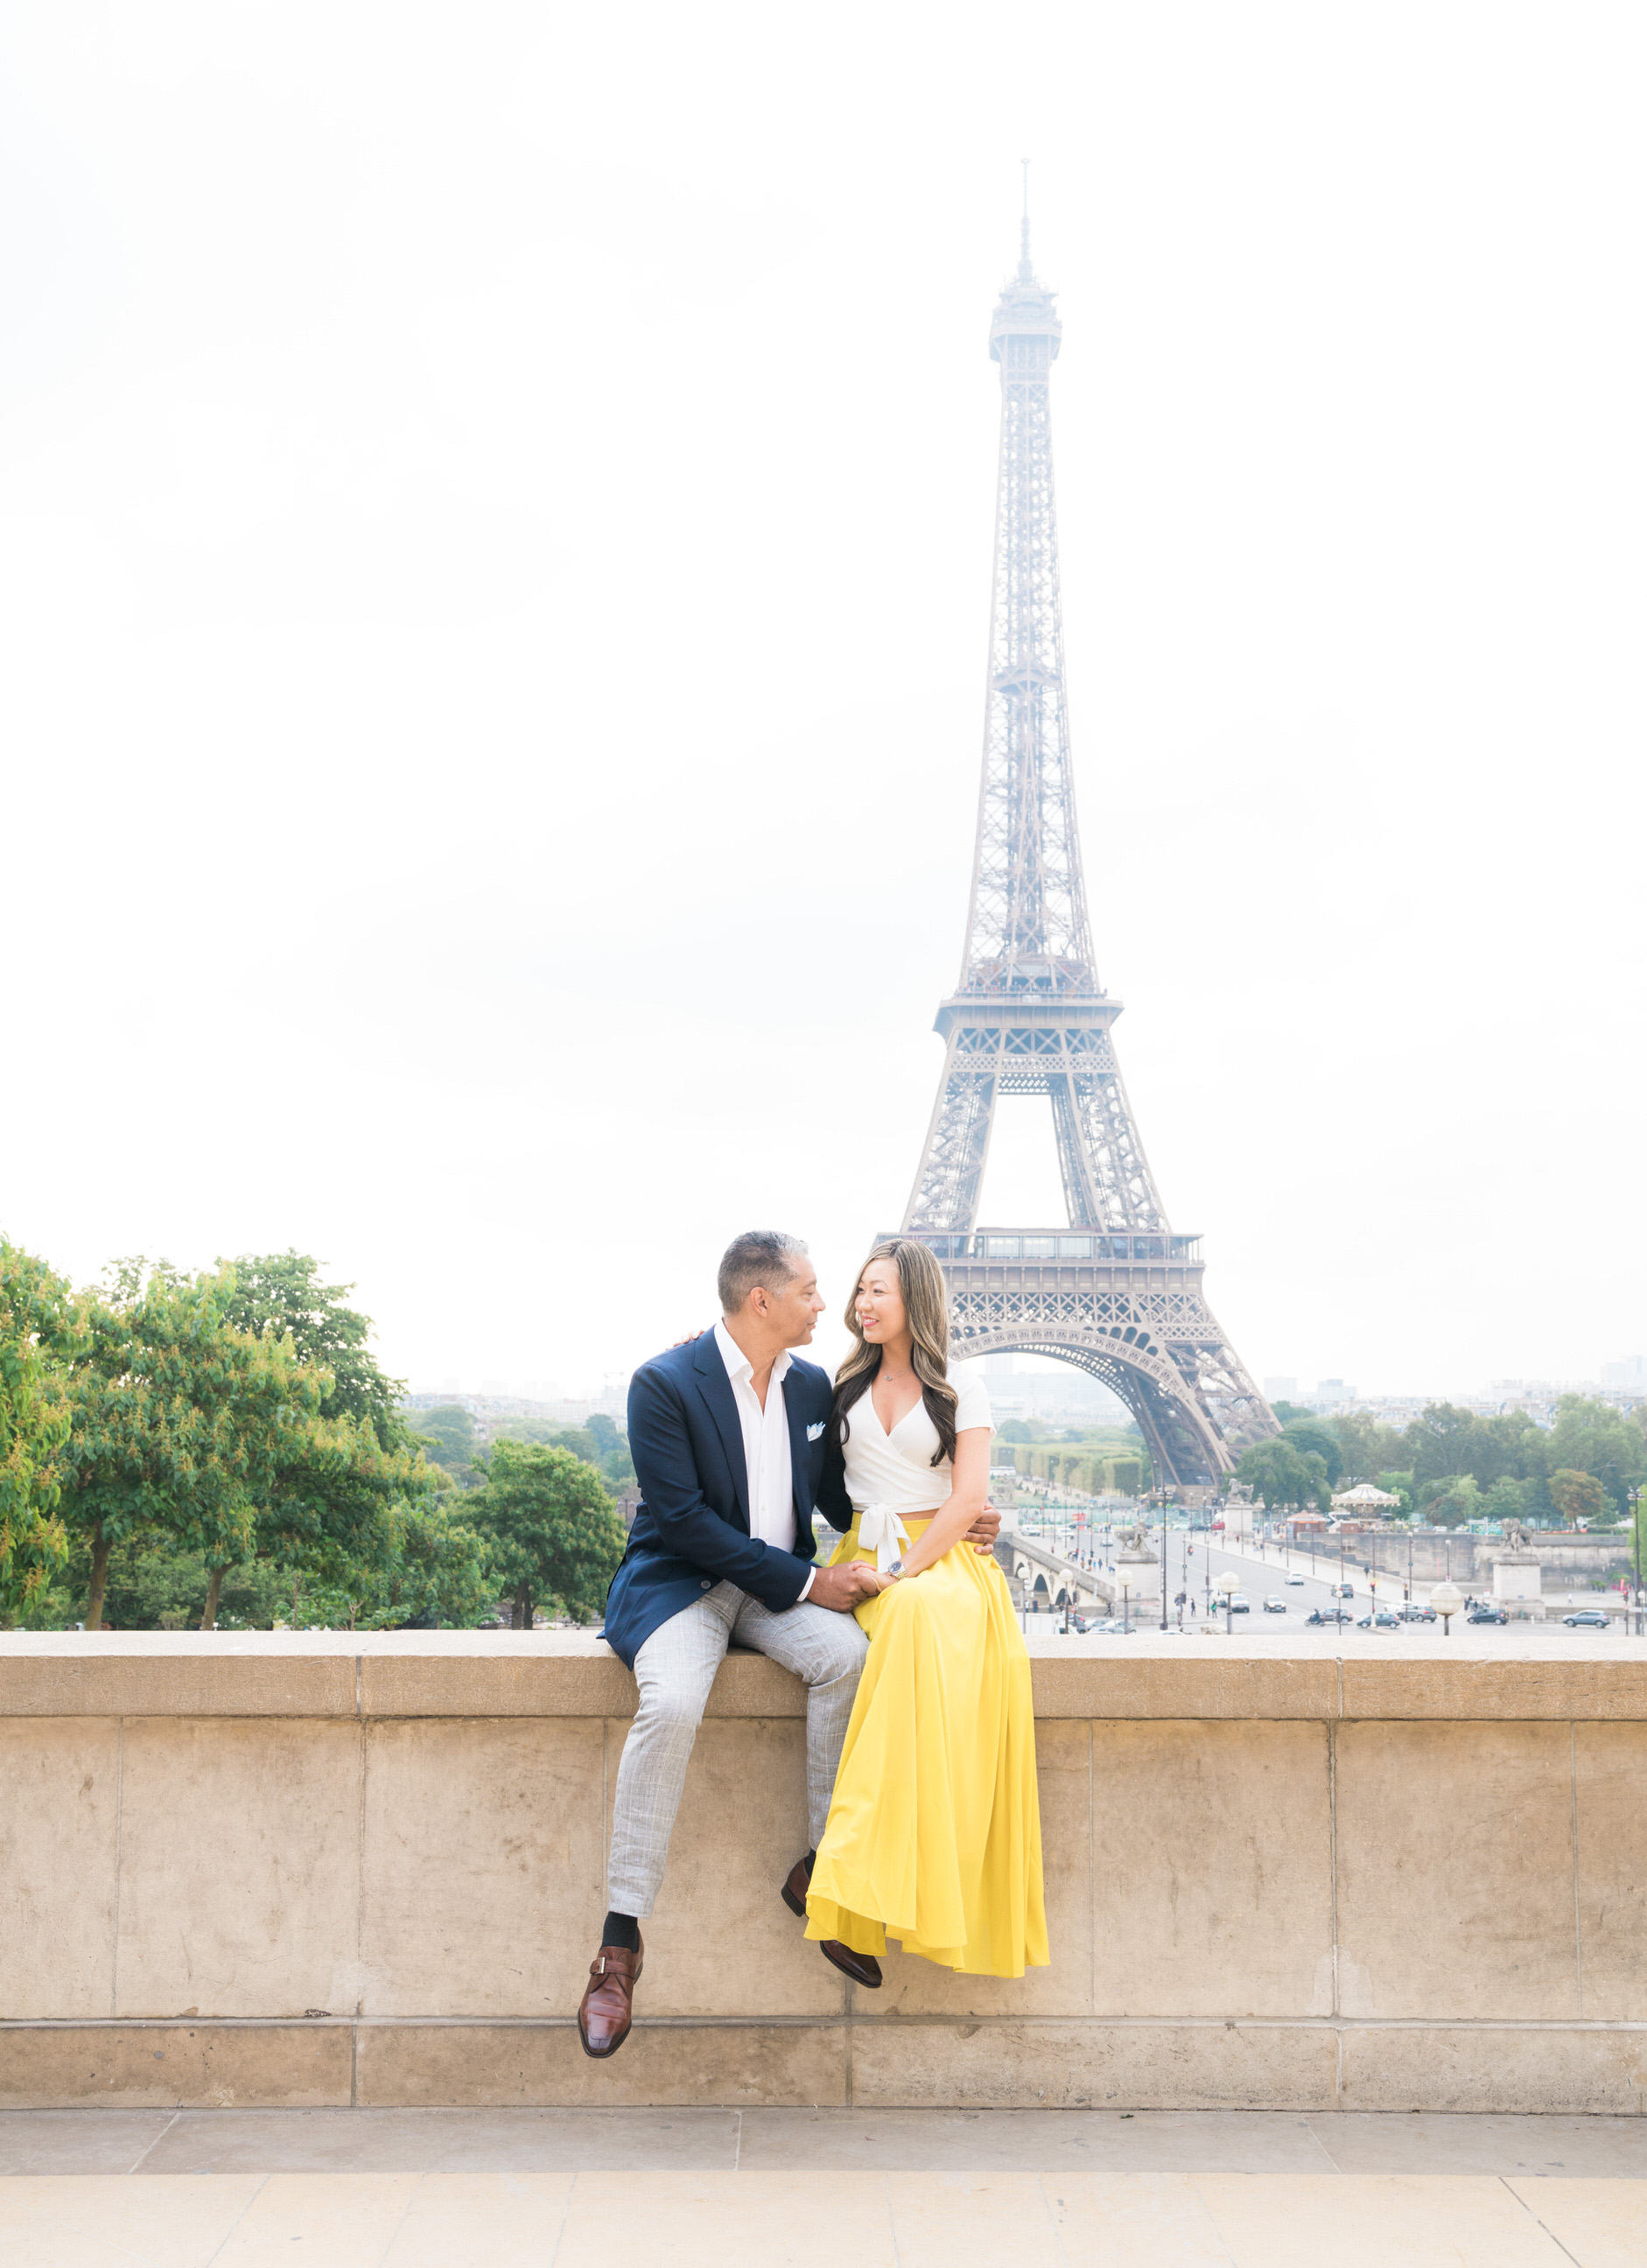 In love, at the Eiffel Tower, what better place to be?